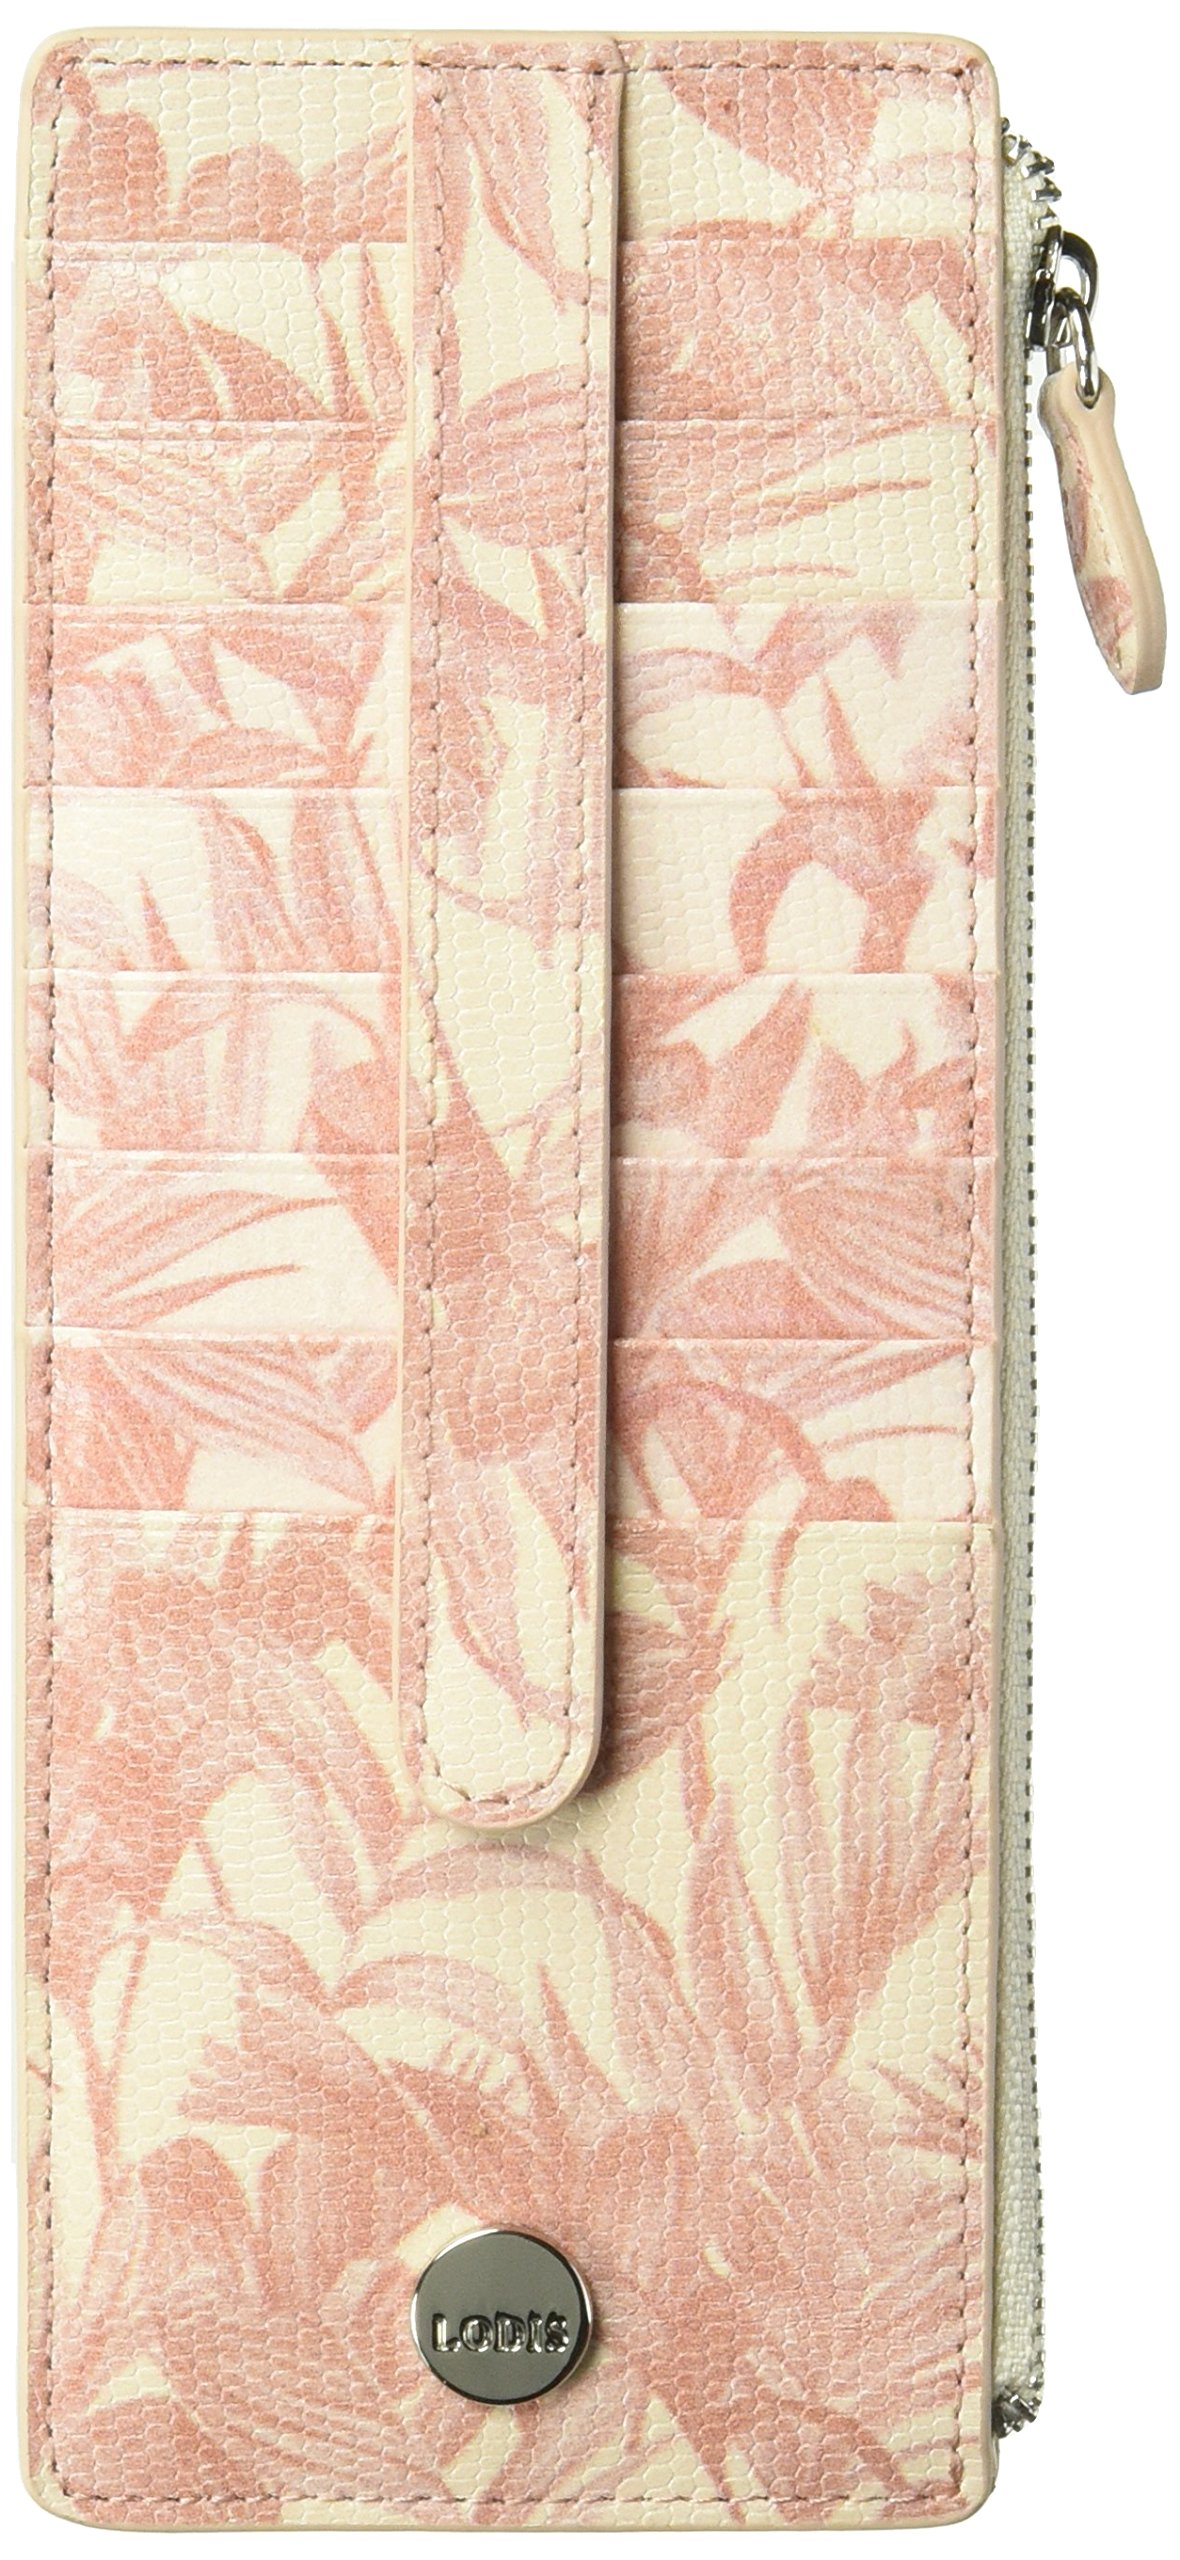 Lodis Palm Credit Card Case with Zipper Pocket, Coral